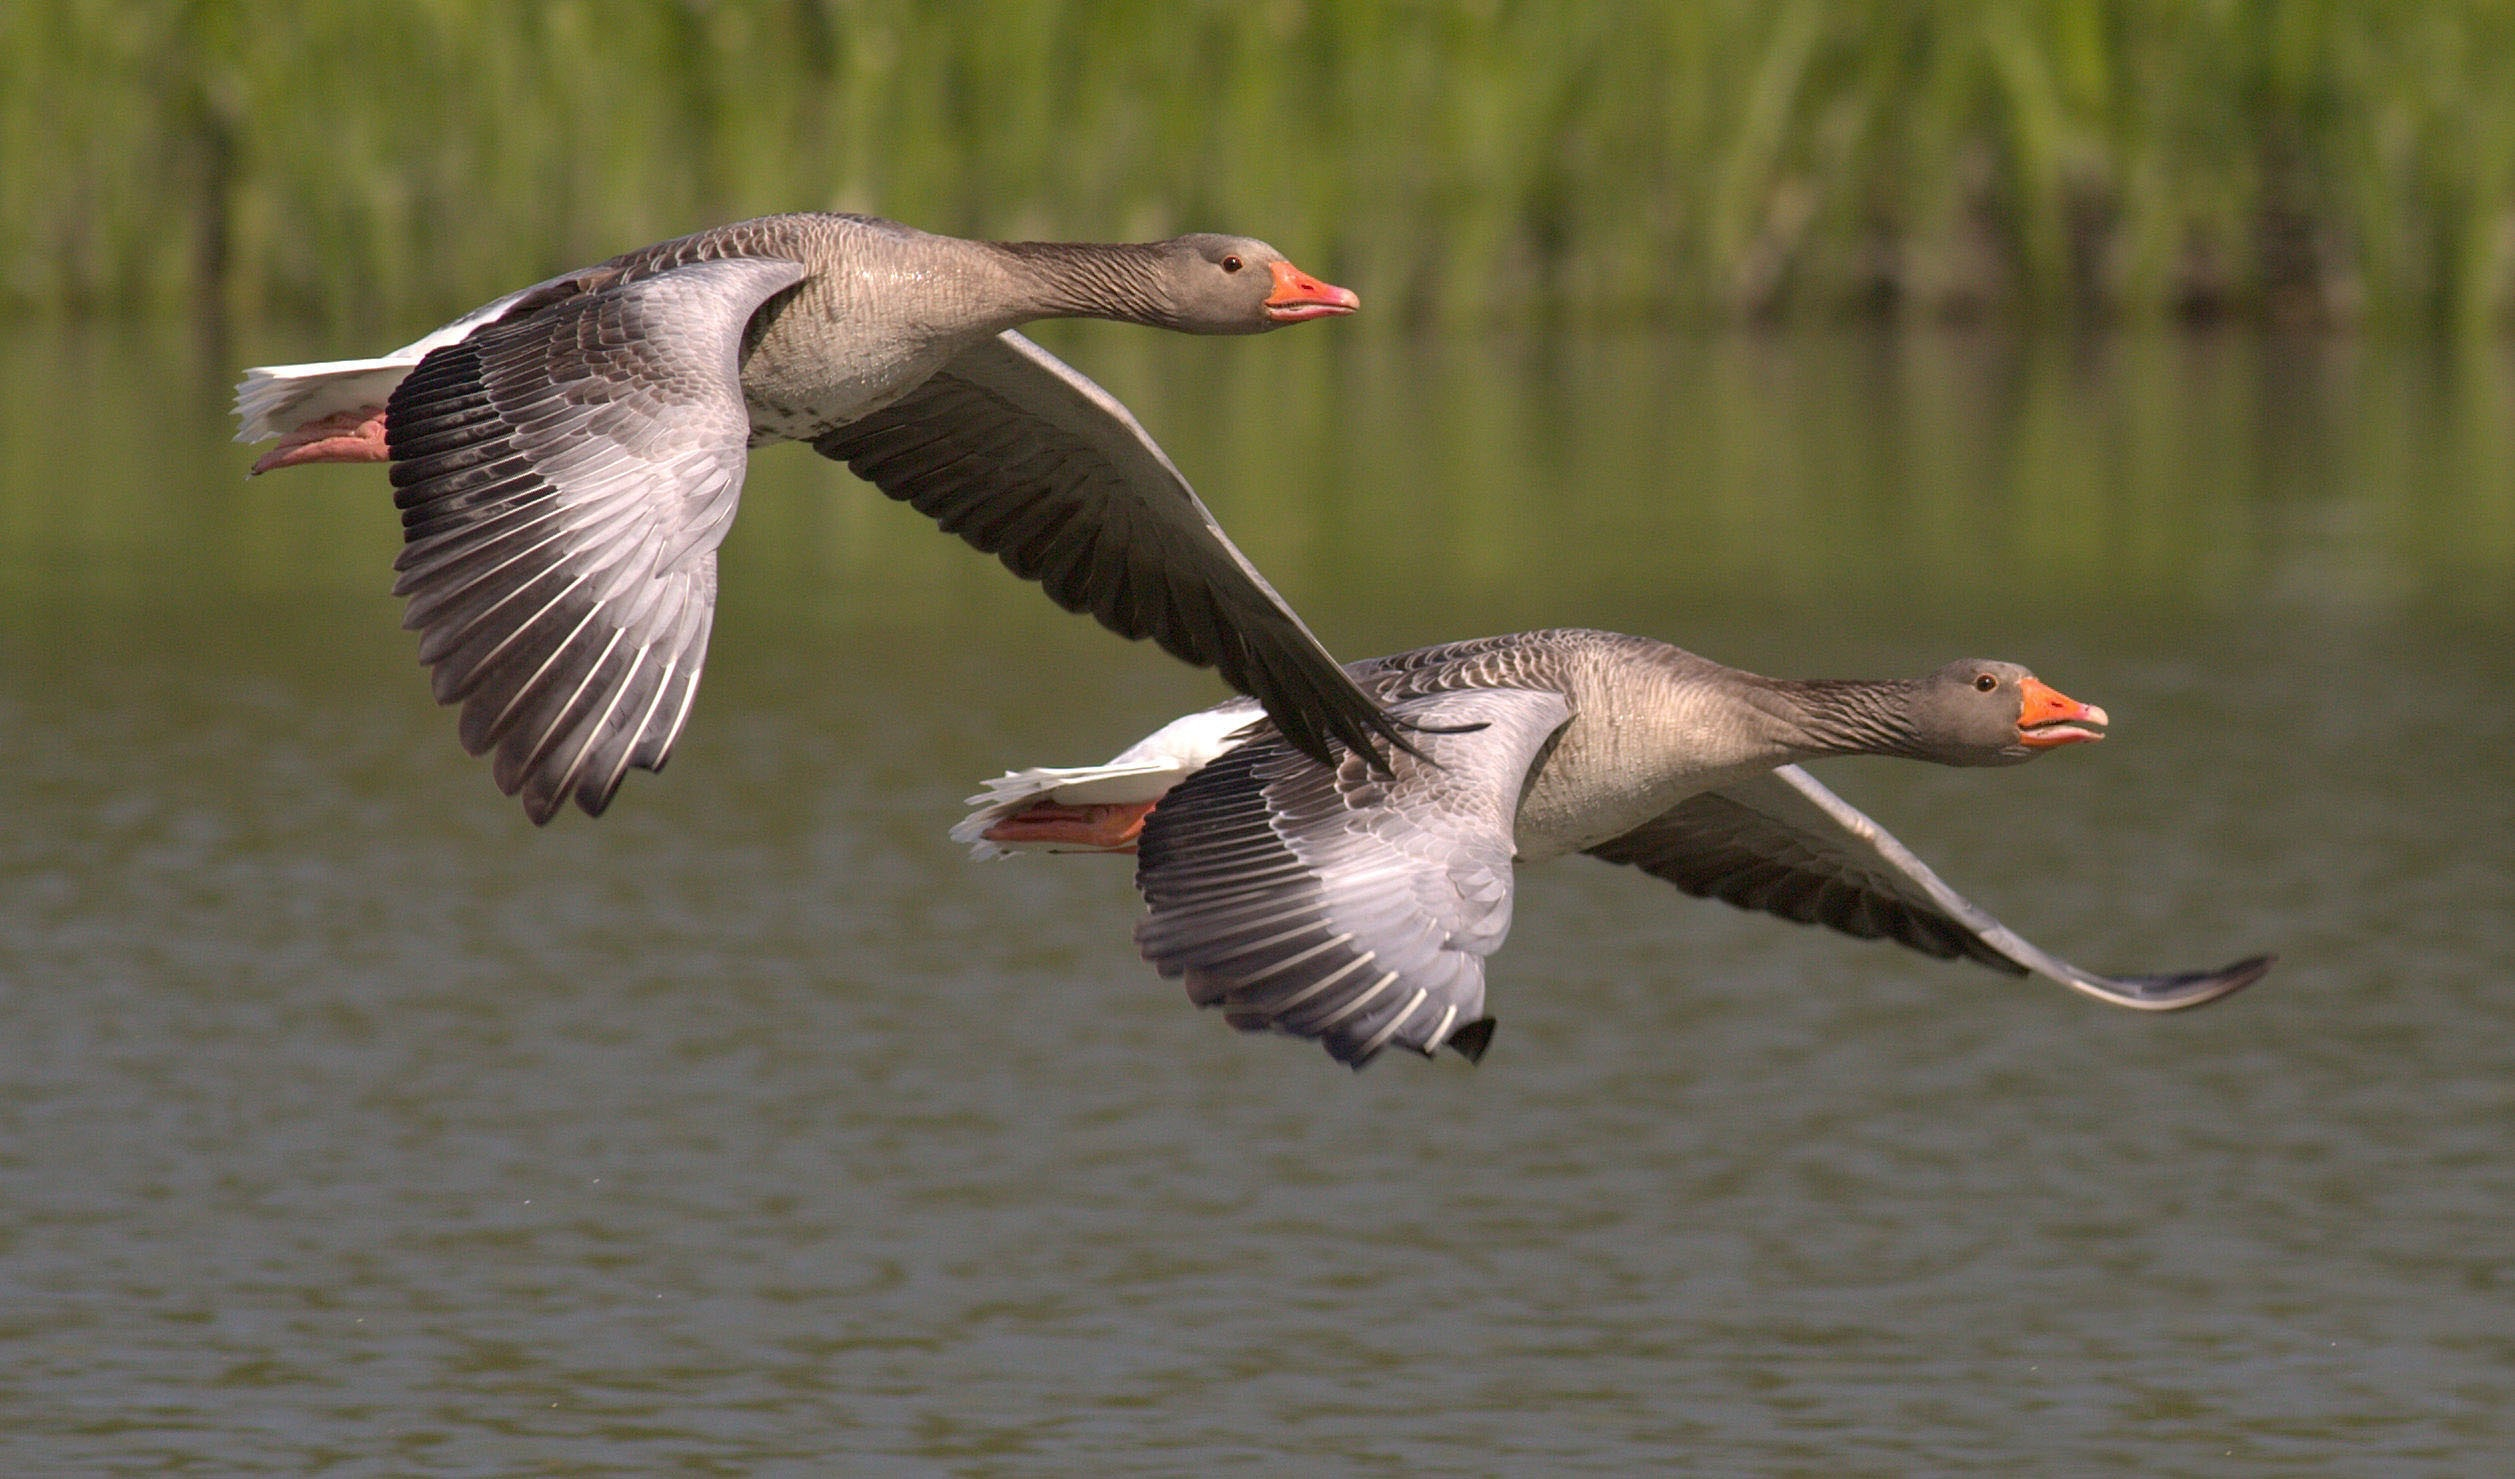 Two Birds in Flight, Nature, Geese, Flight, Birds, HQ Photo